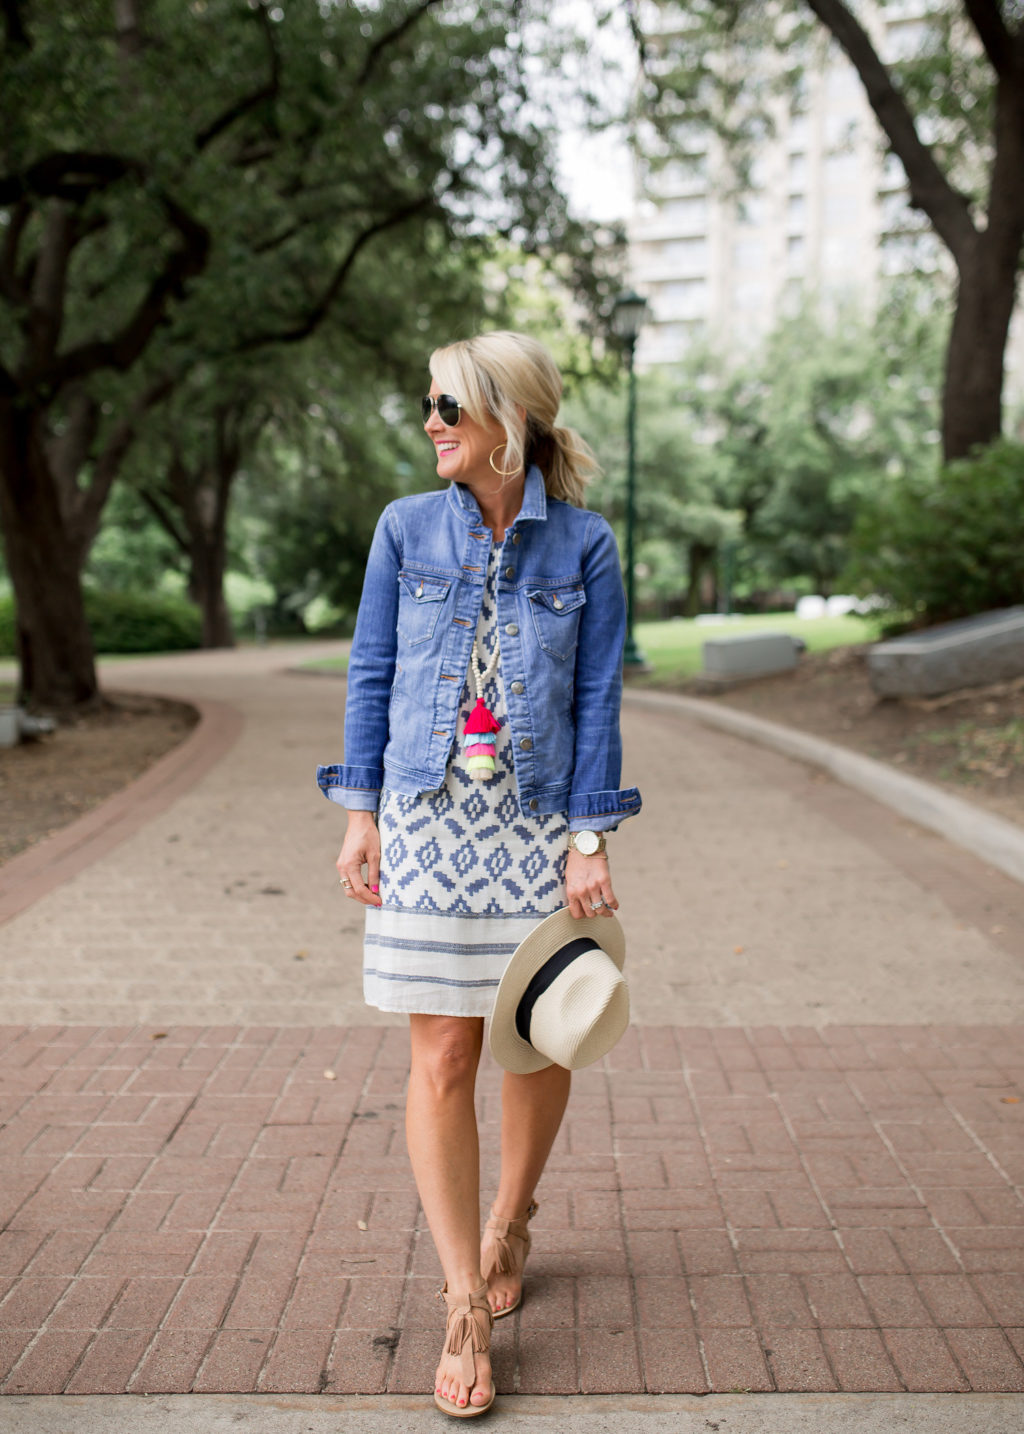 jean jacket in summer with sundress